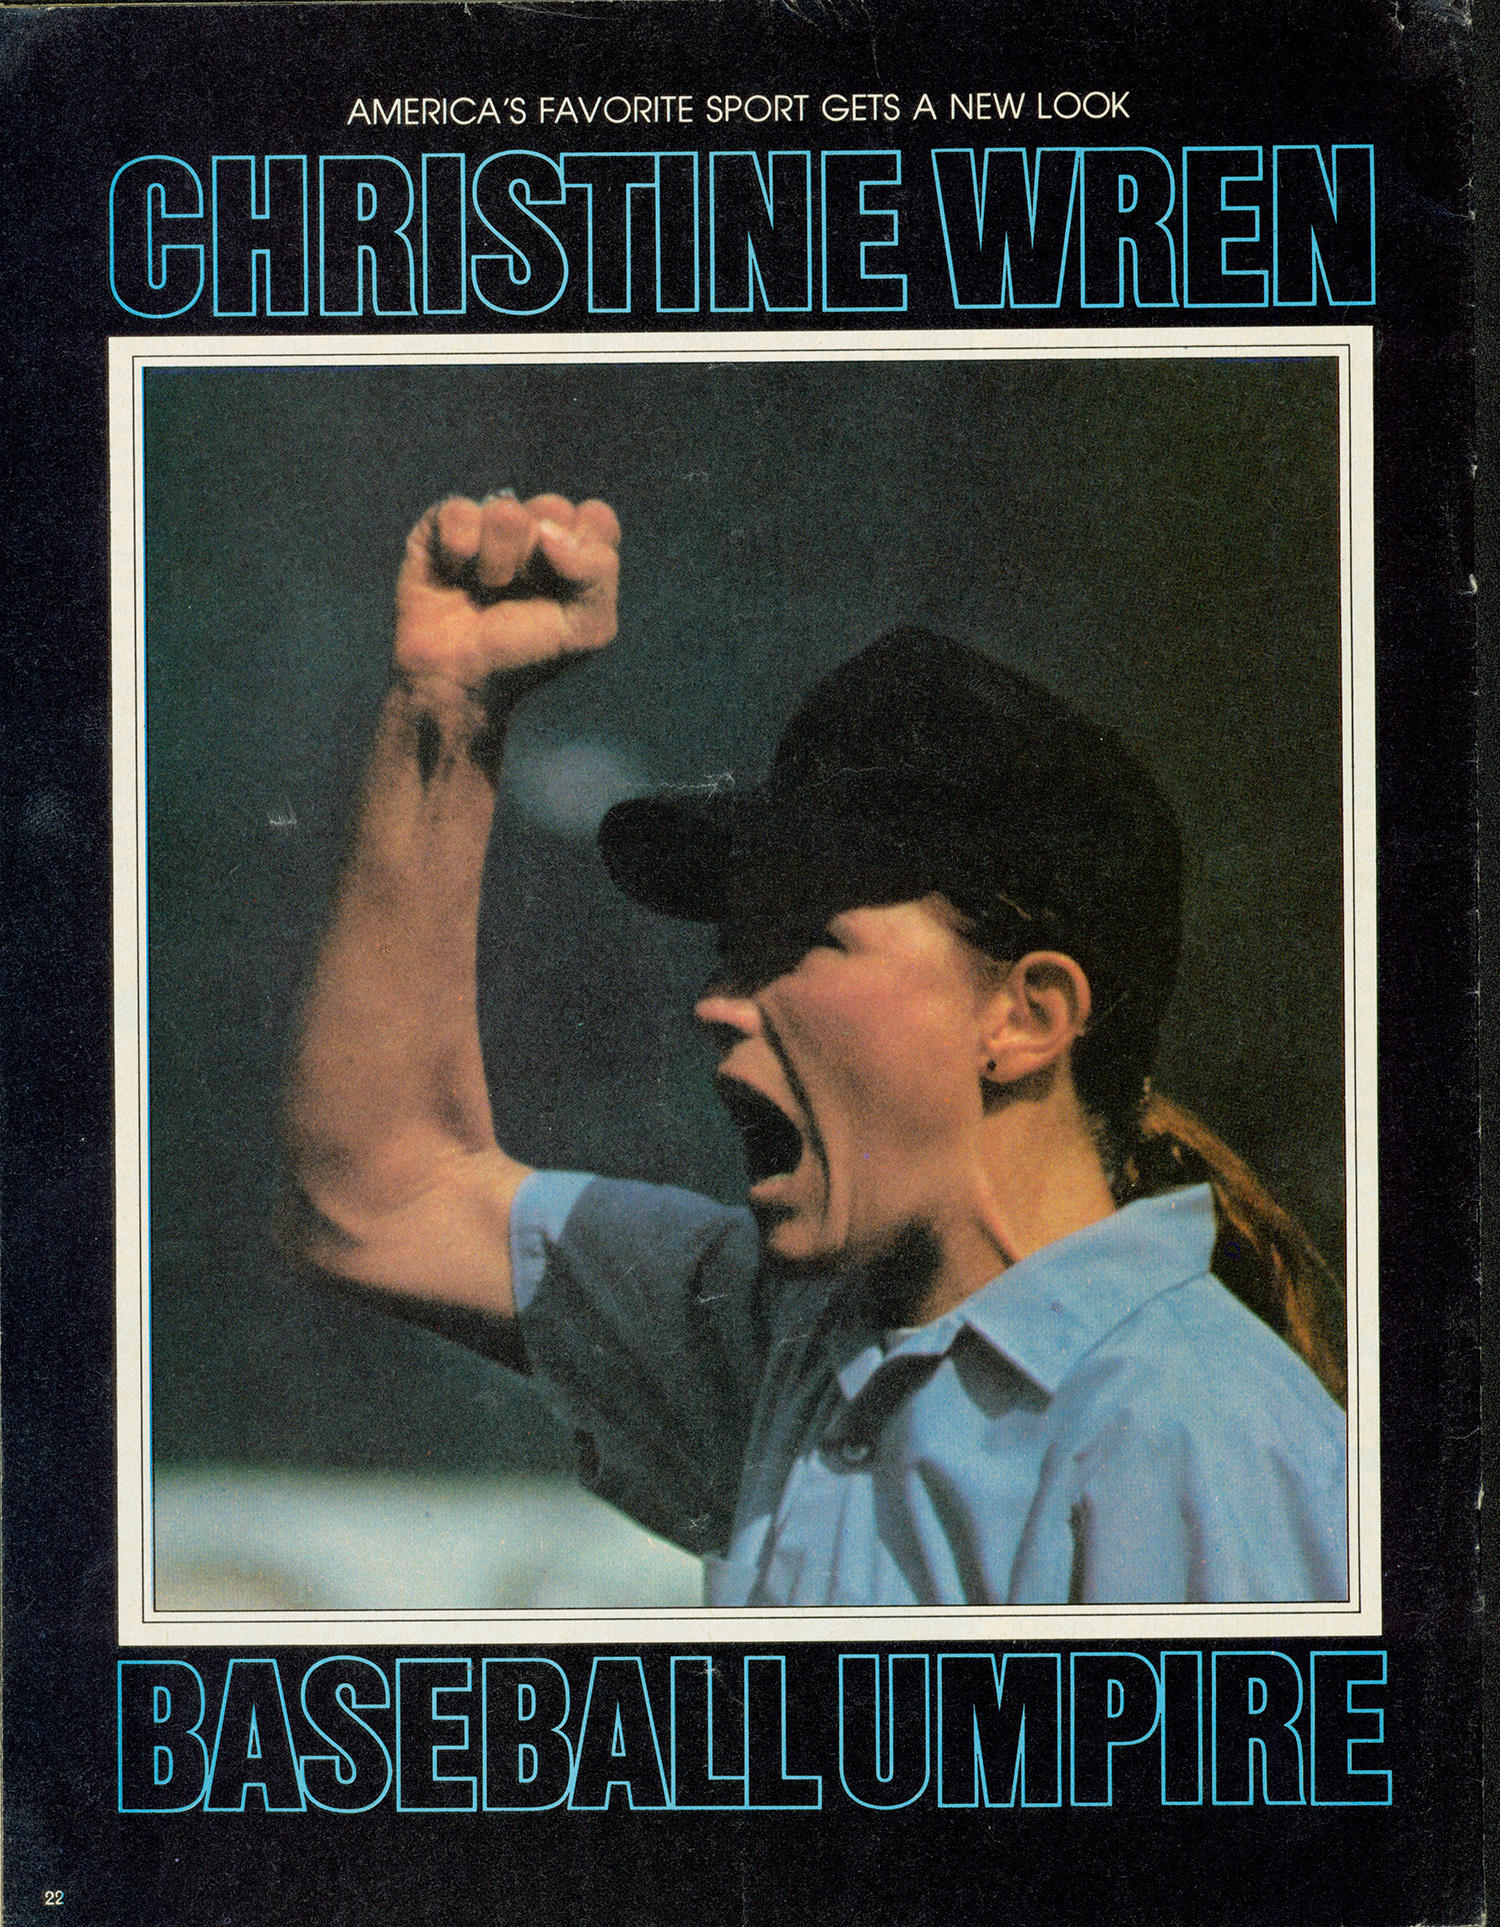 Christine Wren received a lot of media attention after her umpiring debut at the exhibition game between USC and the Los Angeles Dodgers, and graced the covers of magazines like <em>Friends</em> and <em>Referee</em>. (National Baseball Hall of Fame)